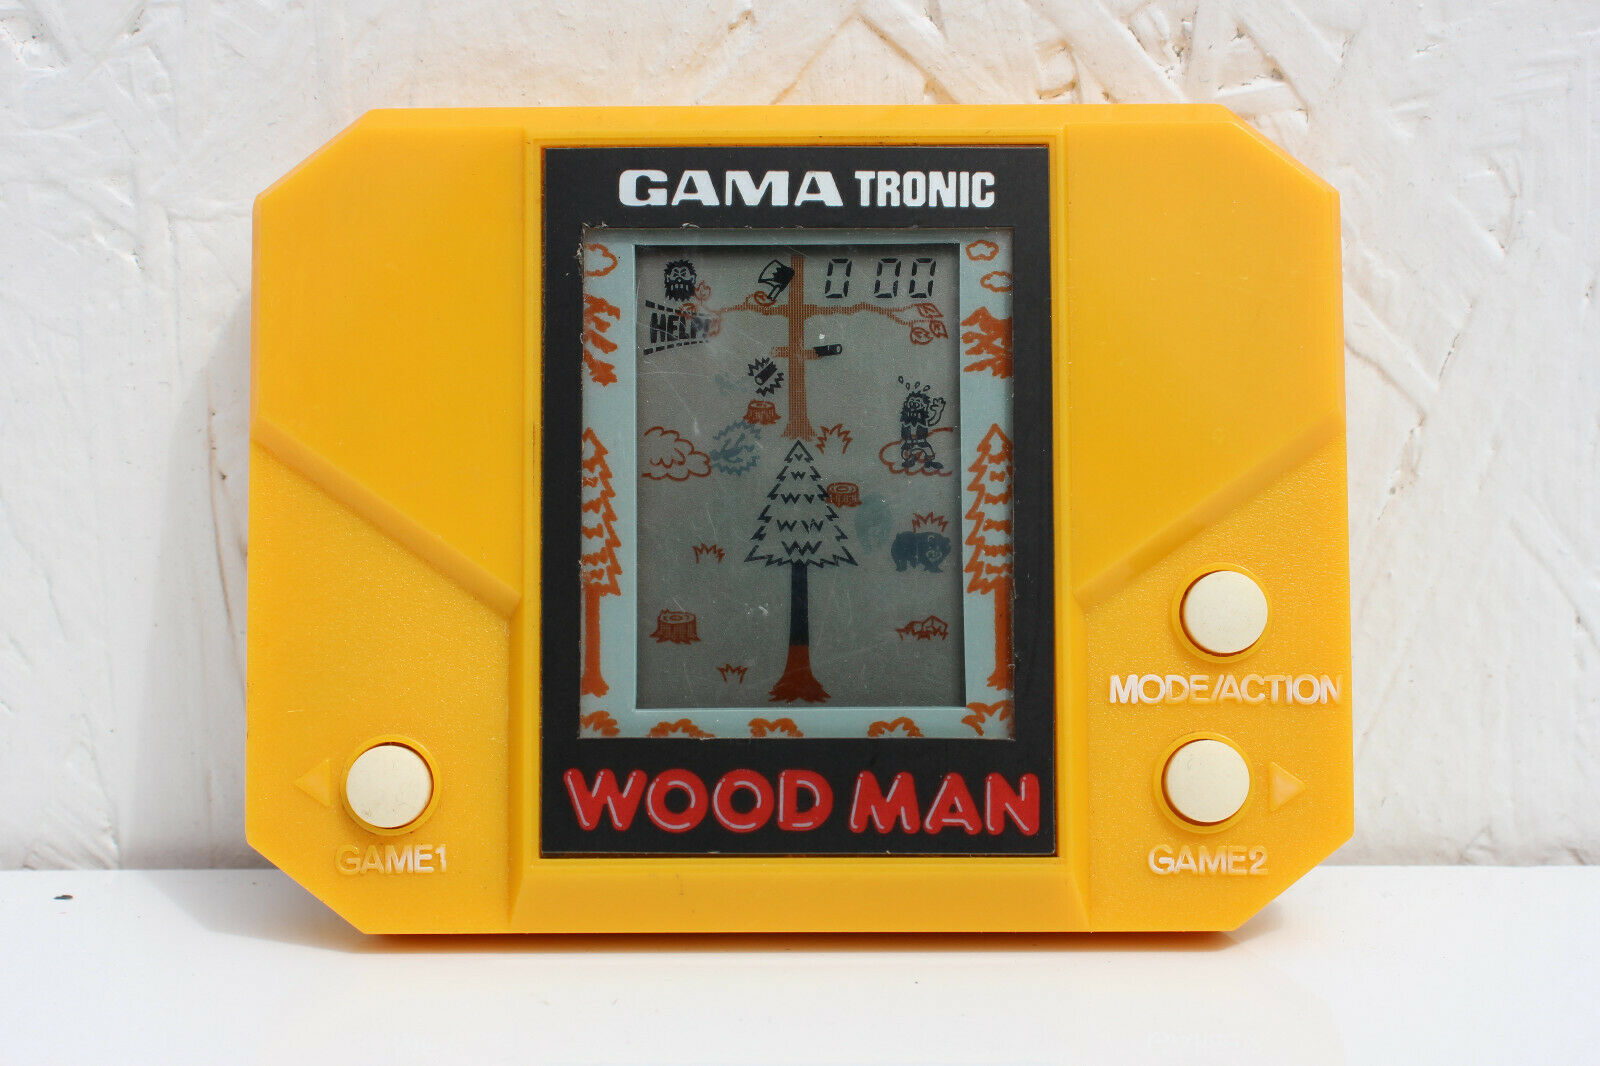 WOOD MAN GAMA TRONIC handheld electric  Video Game  Used Japan 1982 VTG works